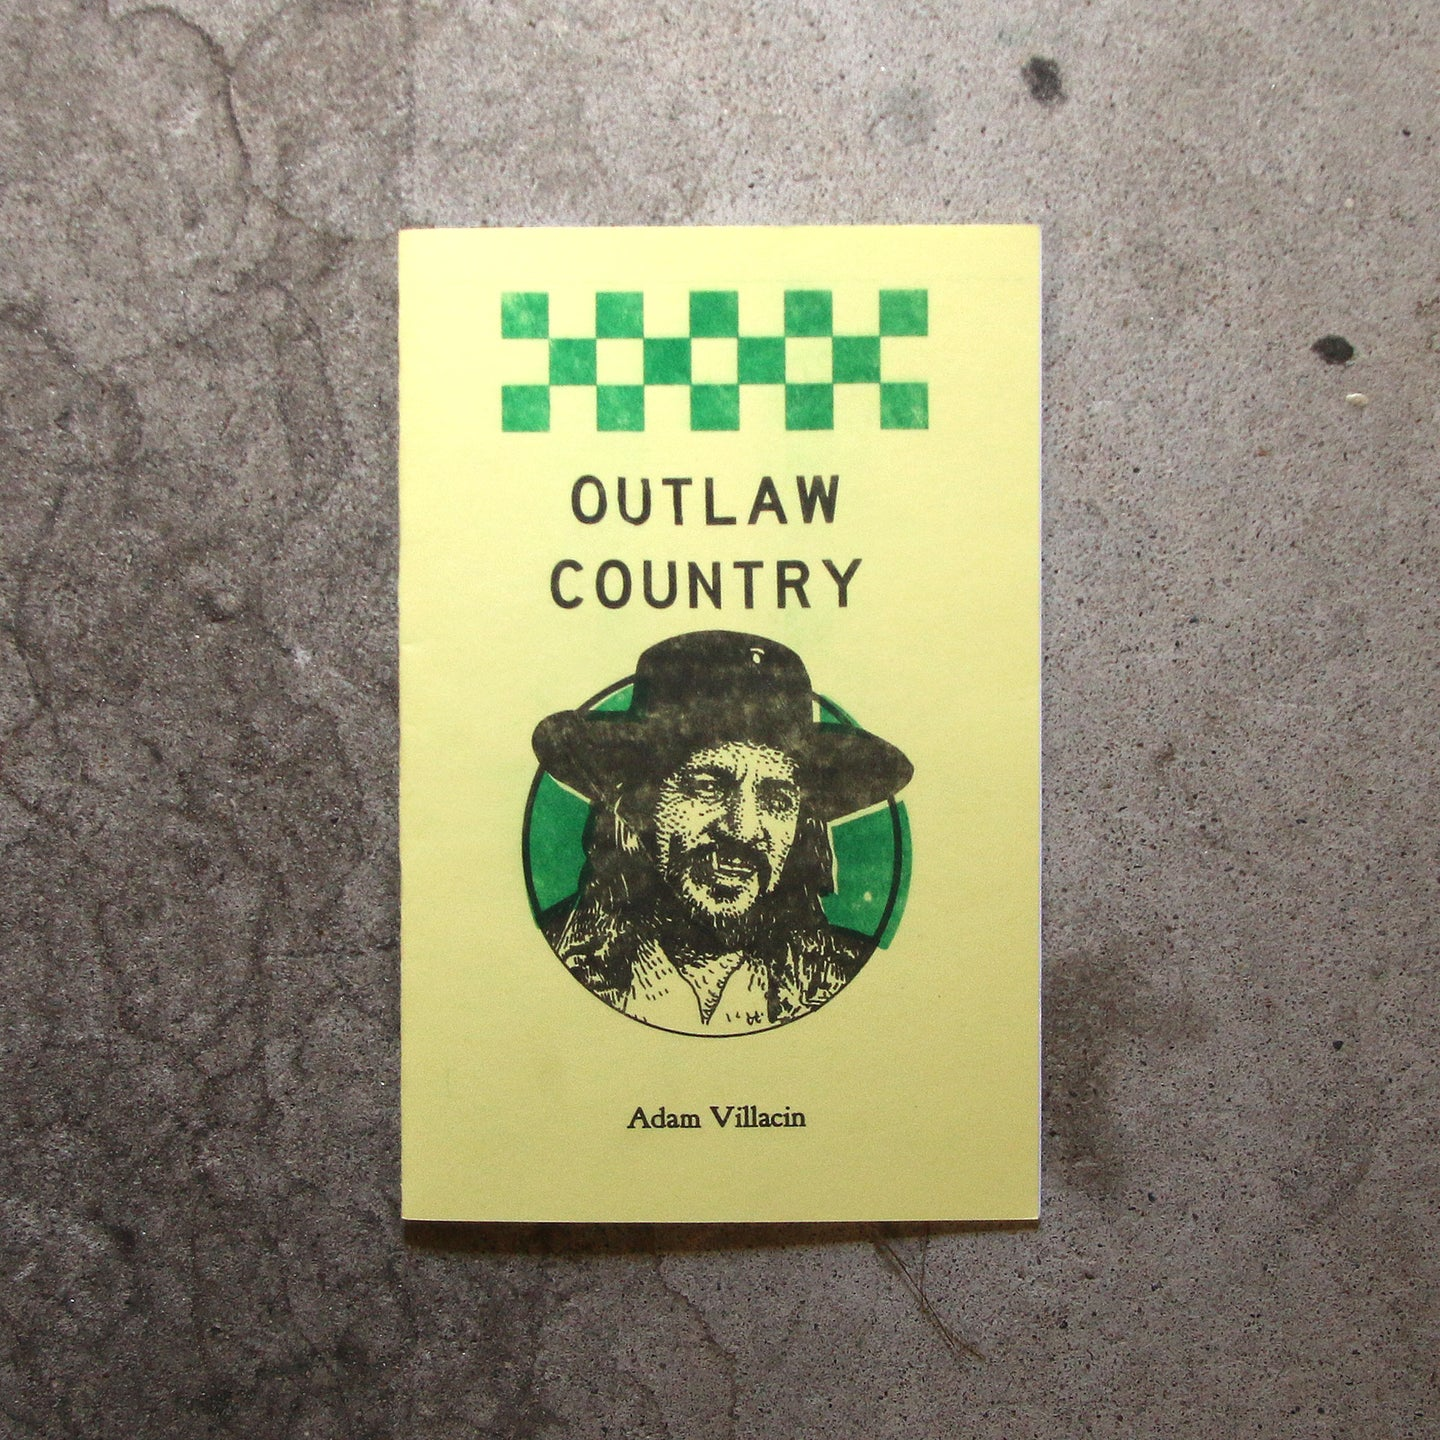 Outlaw Country by Adam Villacin